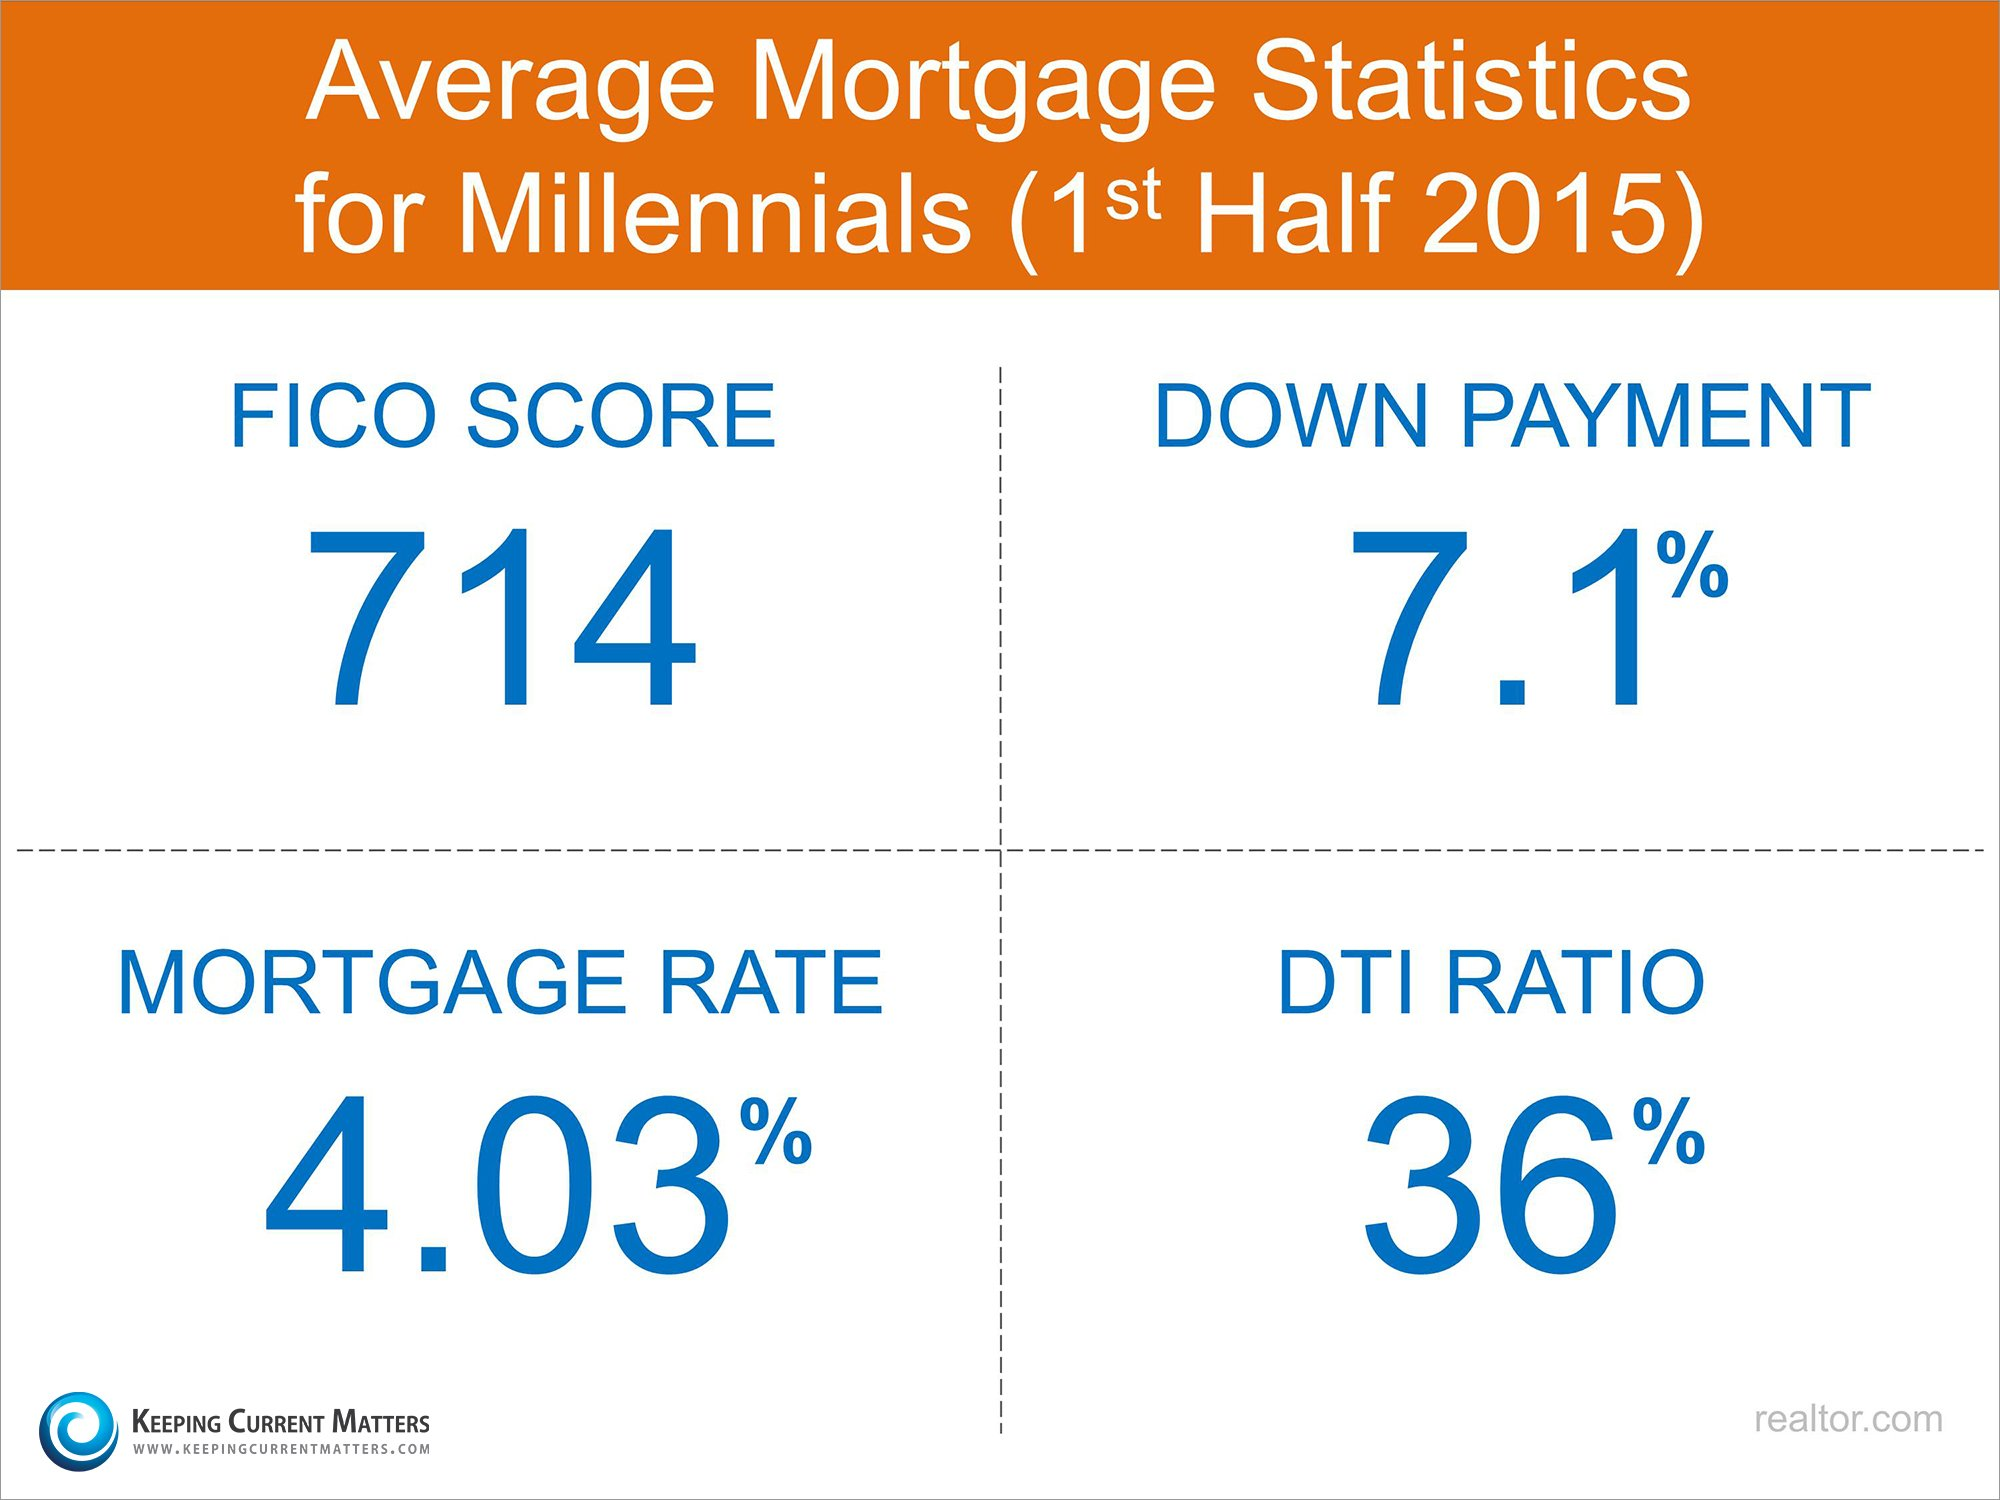 Millennial Mortgage Statistics | Keeping Current Matters